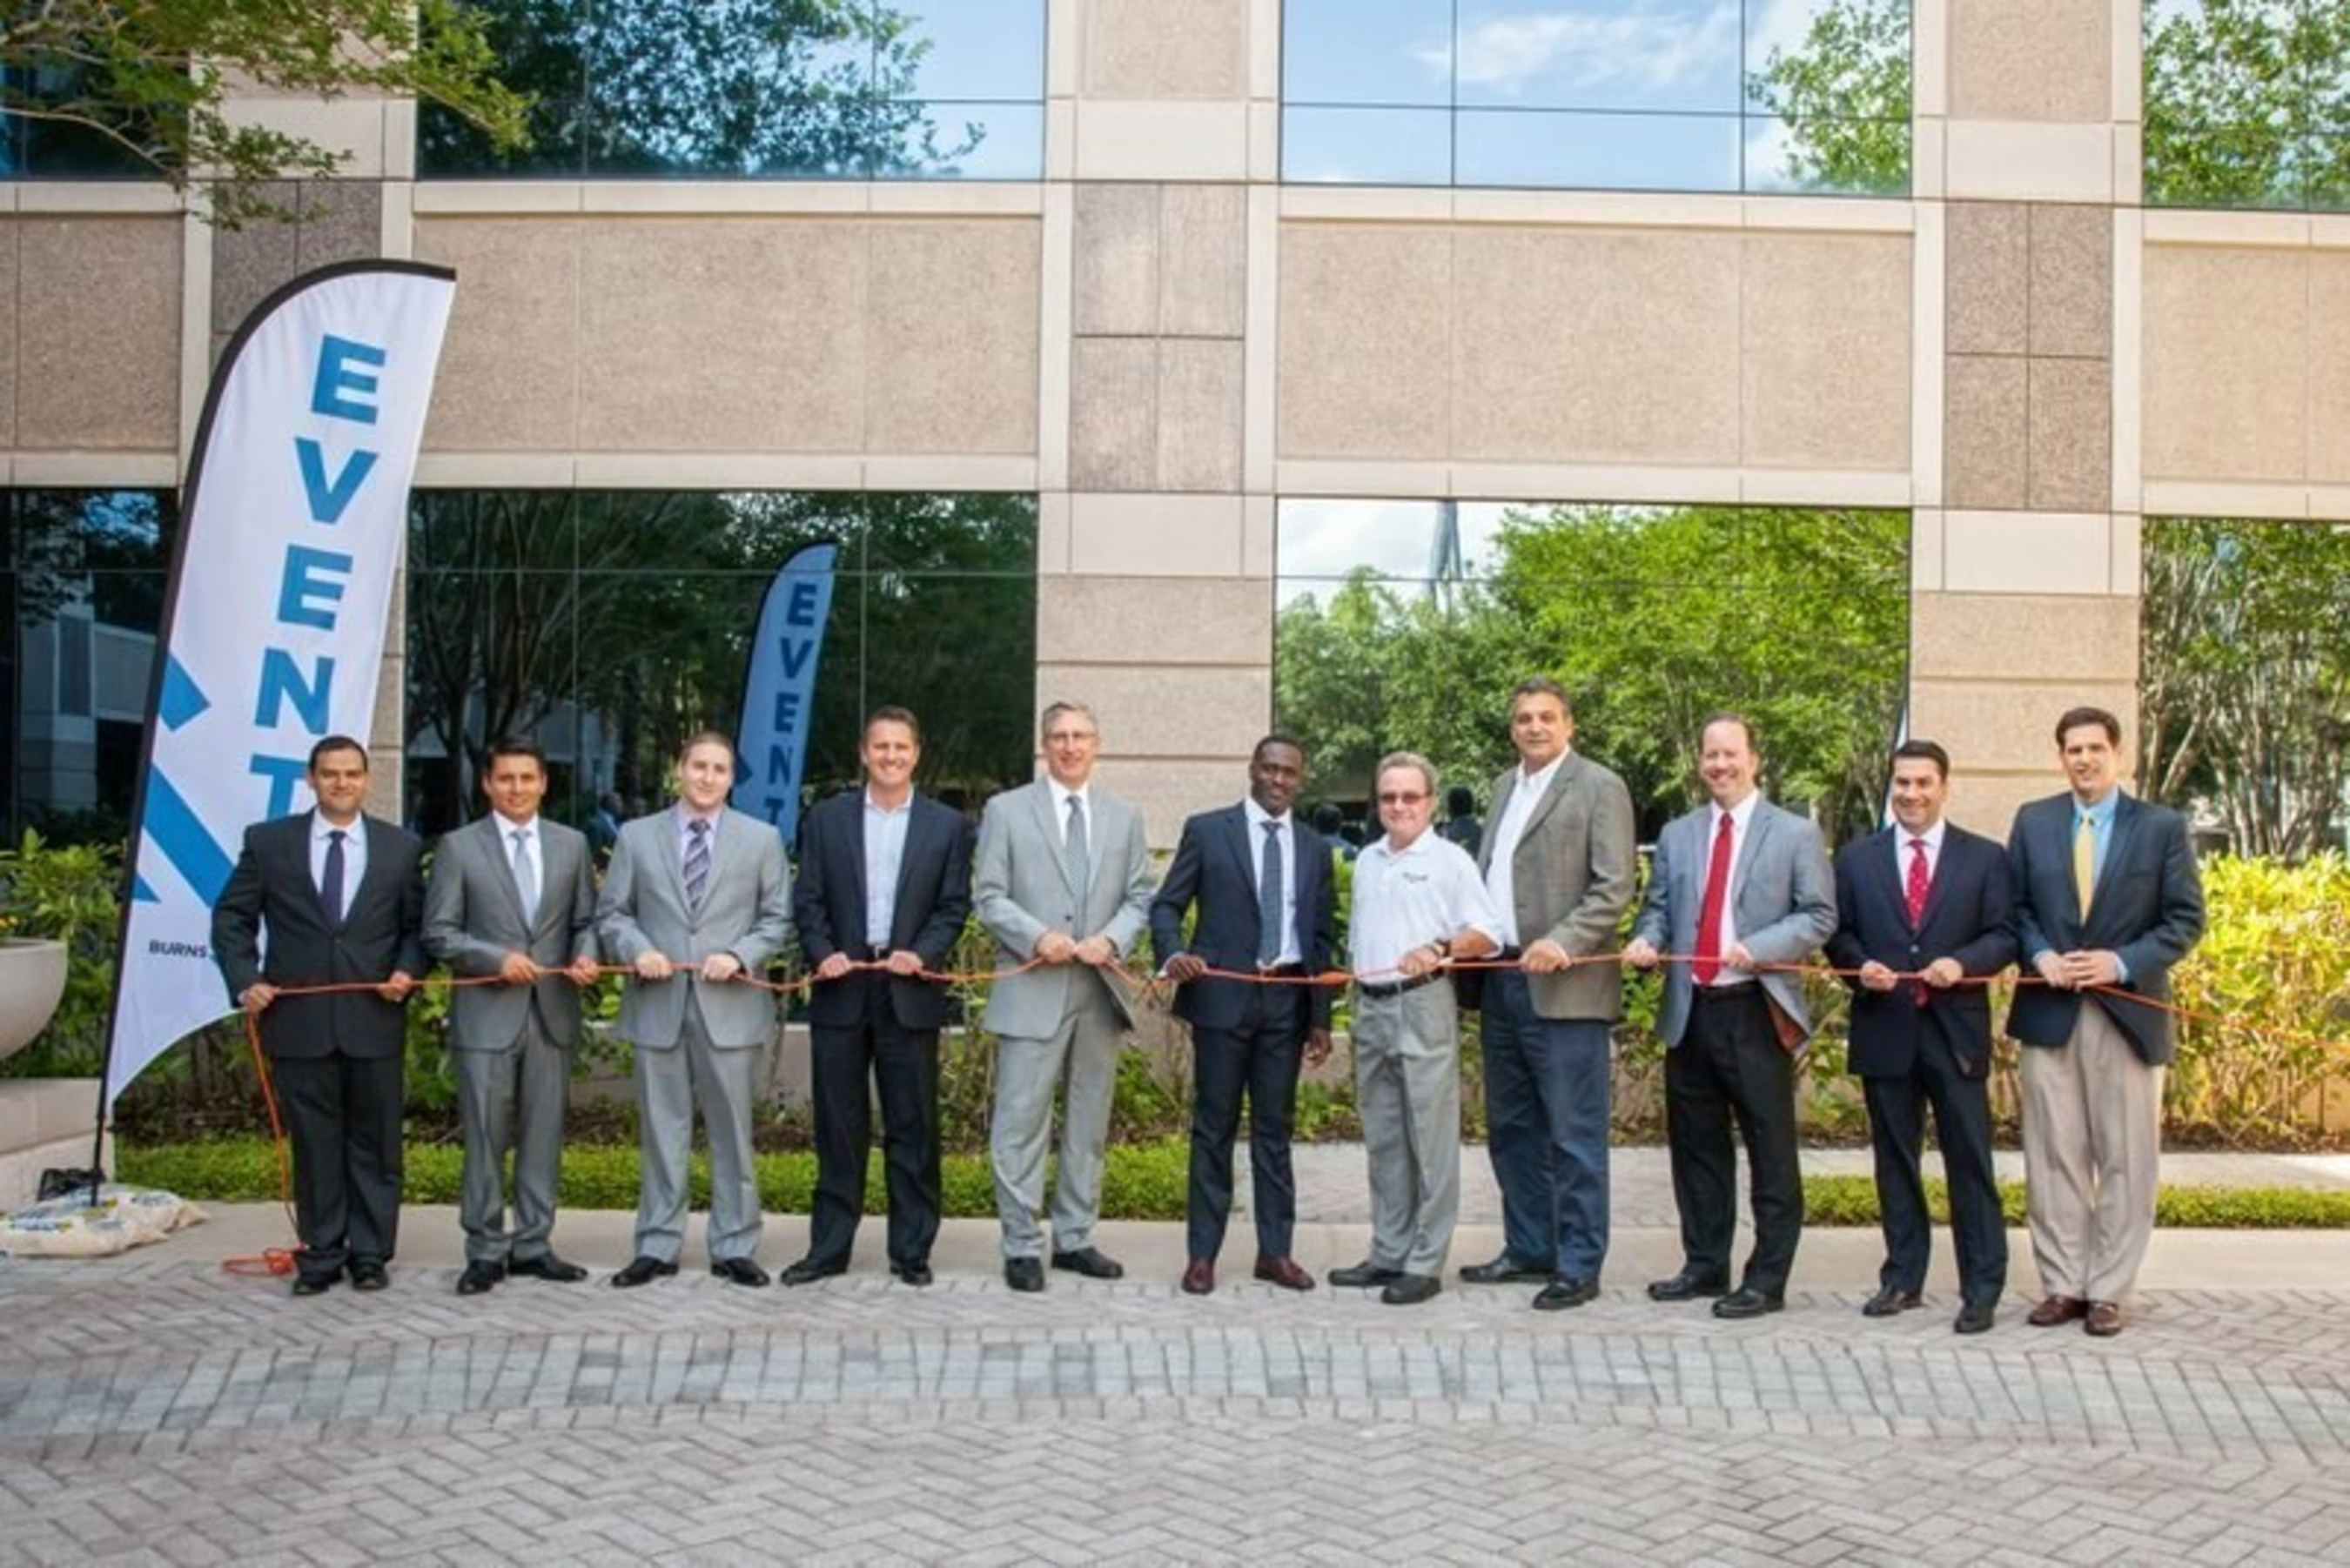 """AEC firm Burns & McDonnell's award-winning and globally-recognized transmission and distribution team launched its latest regional office in Florida. Following their traditional ribbon cutting, the team officially """"plugged in"""" to its clients throughout the state."""